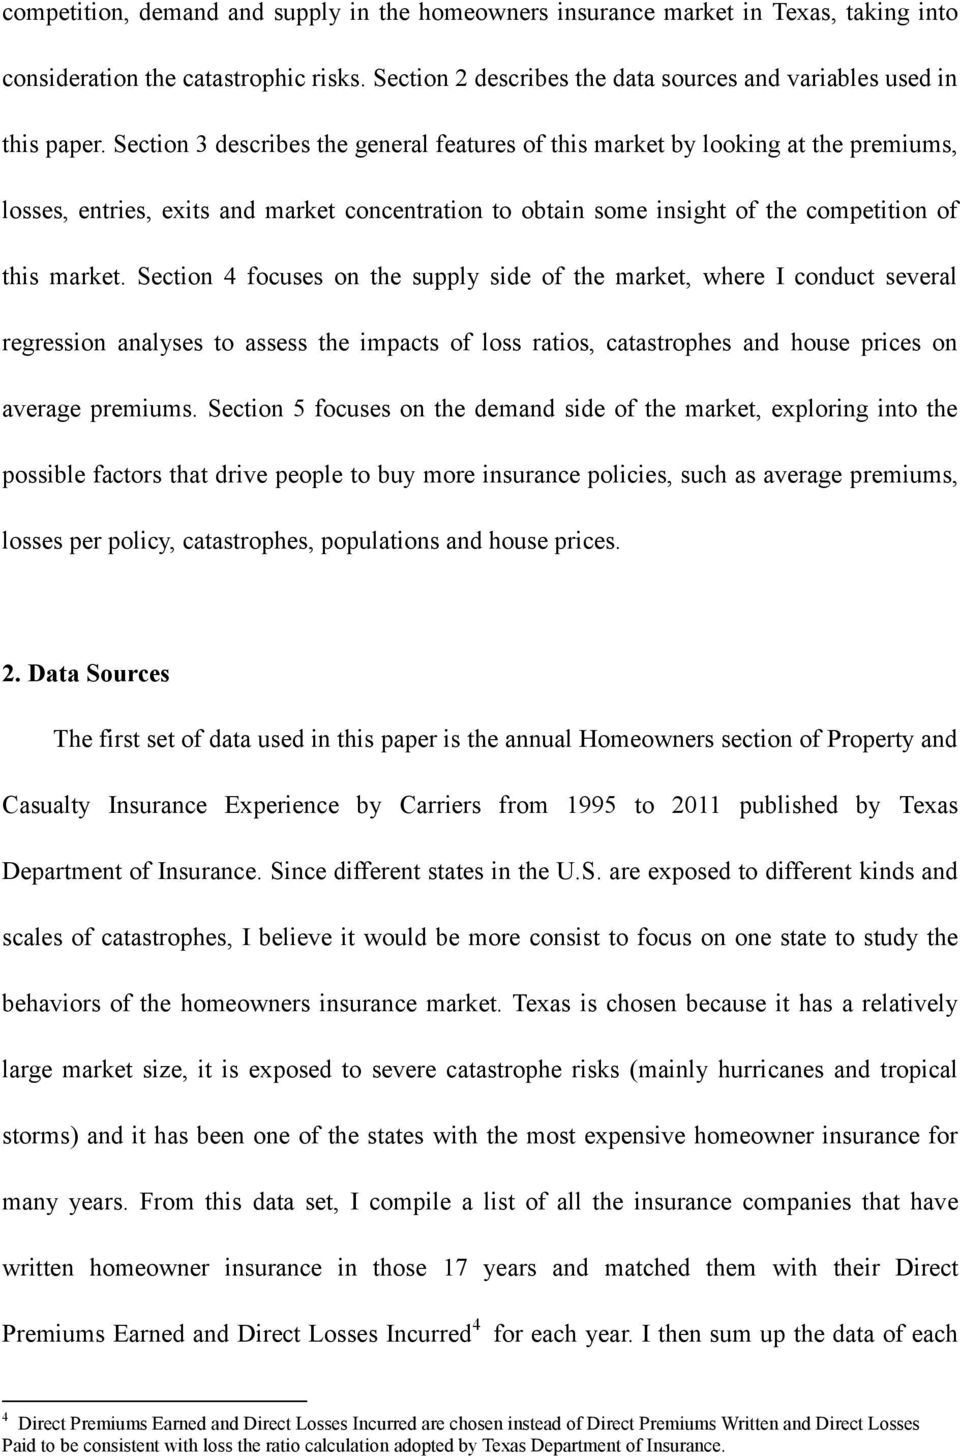 Section 4 focuses on the supply side of the market, where I conduct several regression analyses to assess the impacts of loss ratios, catastrophes and house prices on average premiums.